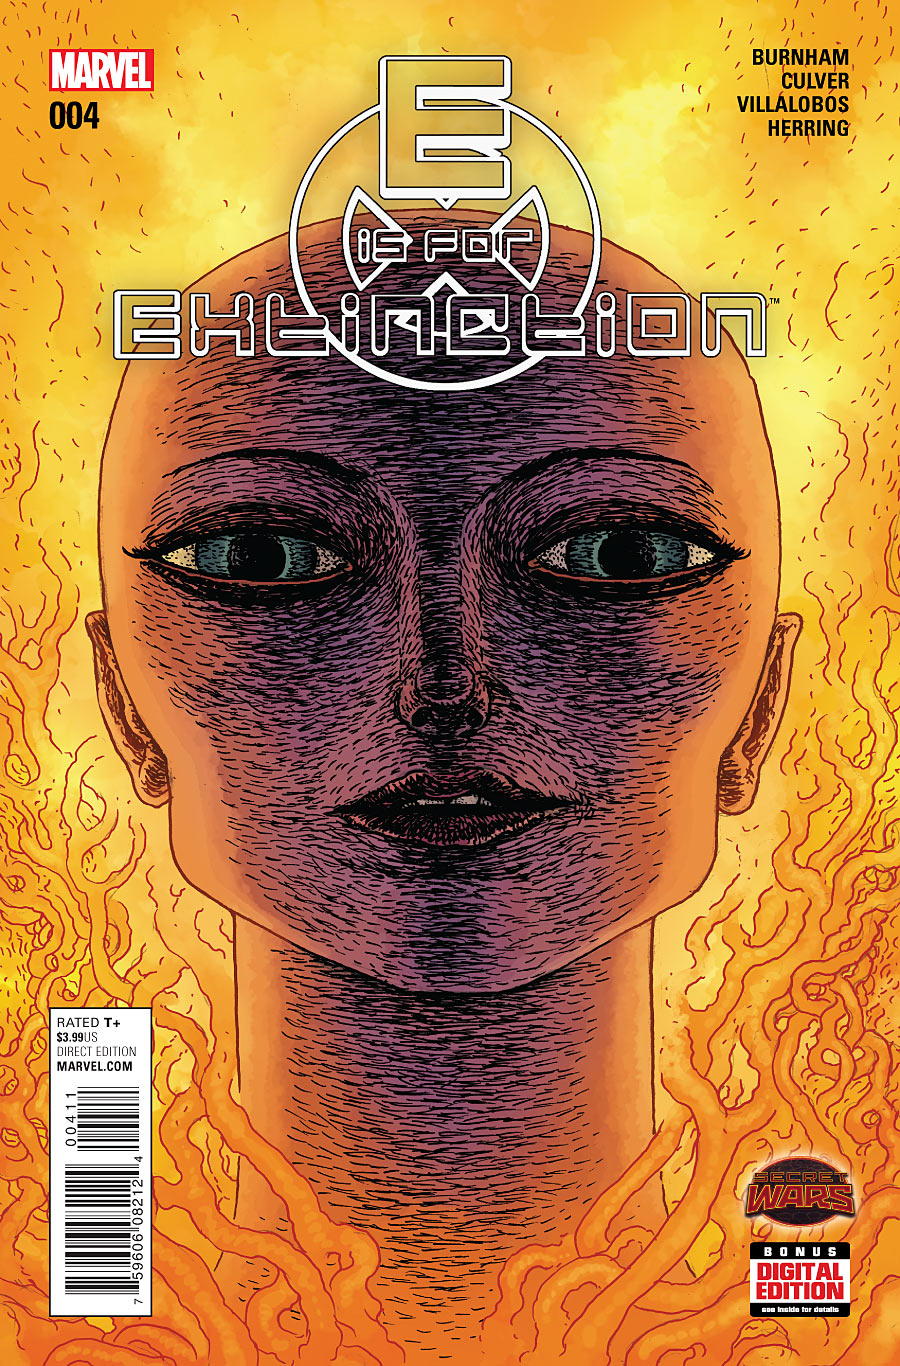 2015 E IS FOR EXTINCTION #1 1ST PRINT  SECRET WARS TIE-IN *SPECIAL LOW PRICING